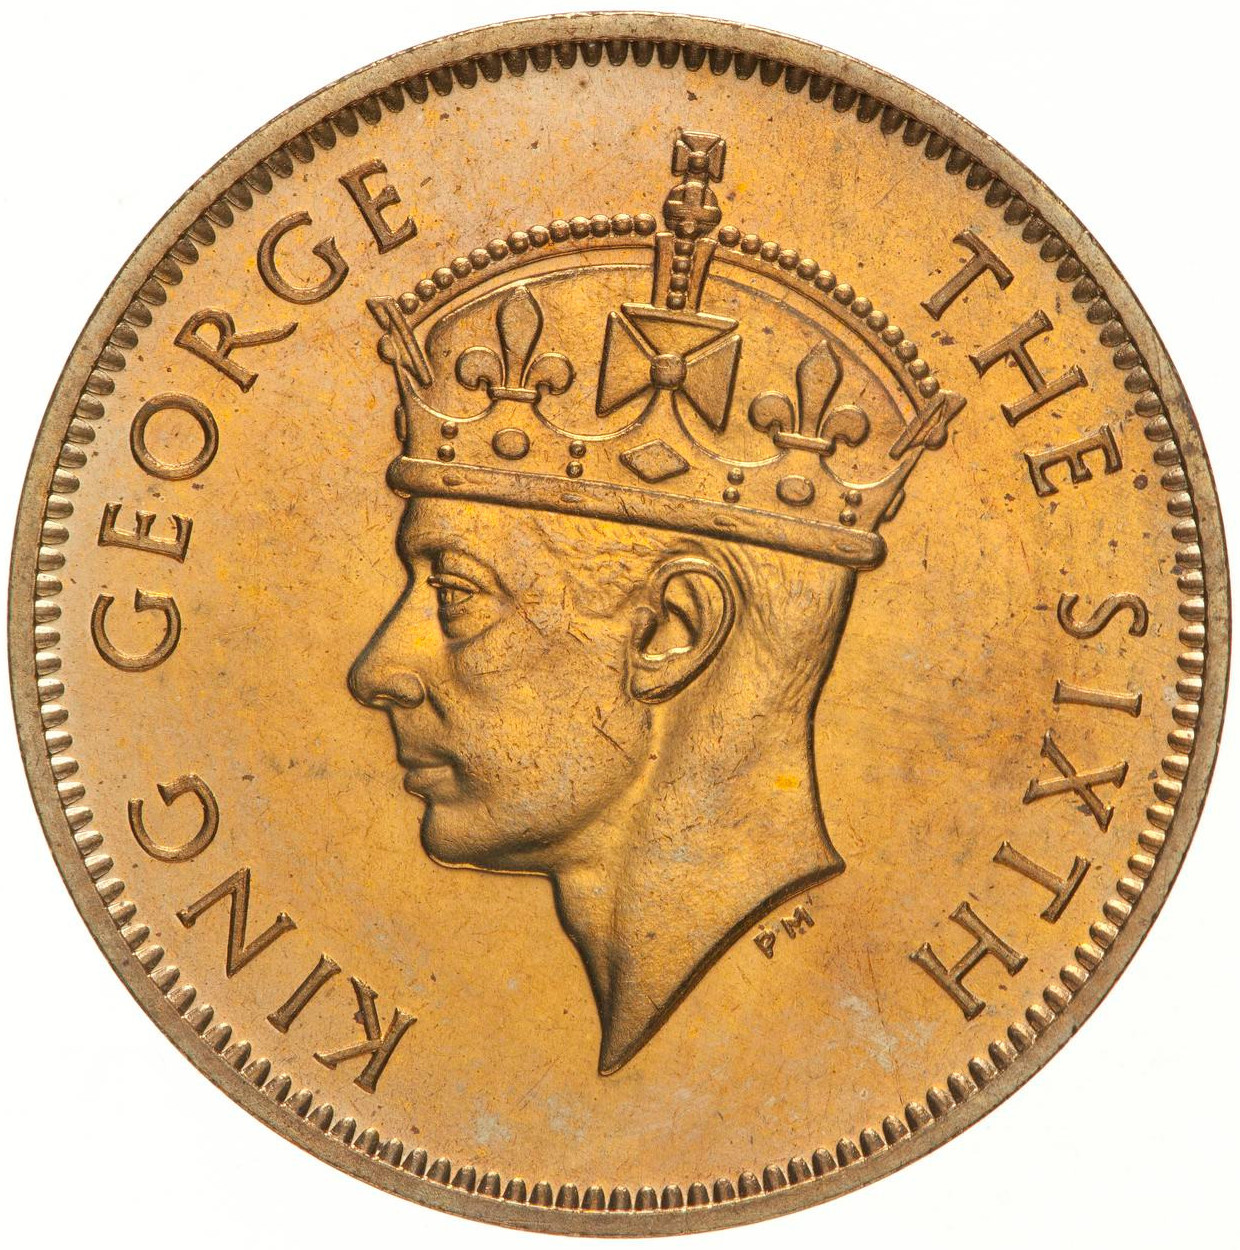 Five Cents: Photo Proof Coin - 5 Cents, British Honduras (Belize), 1949